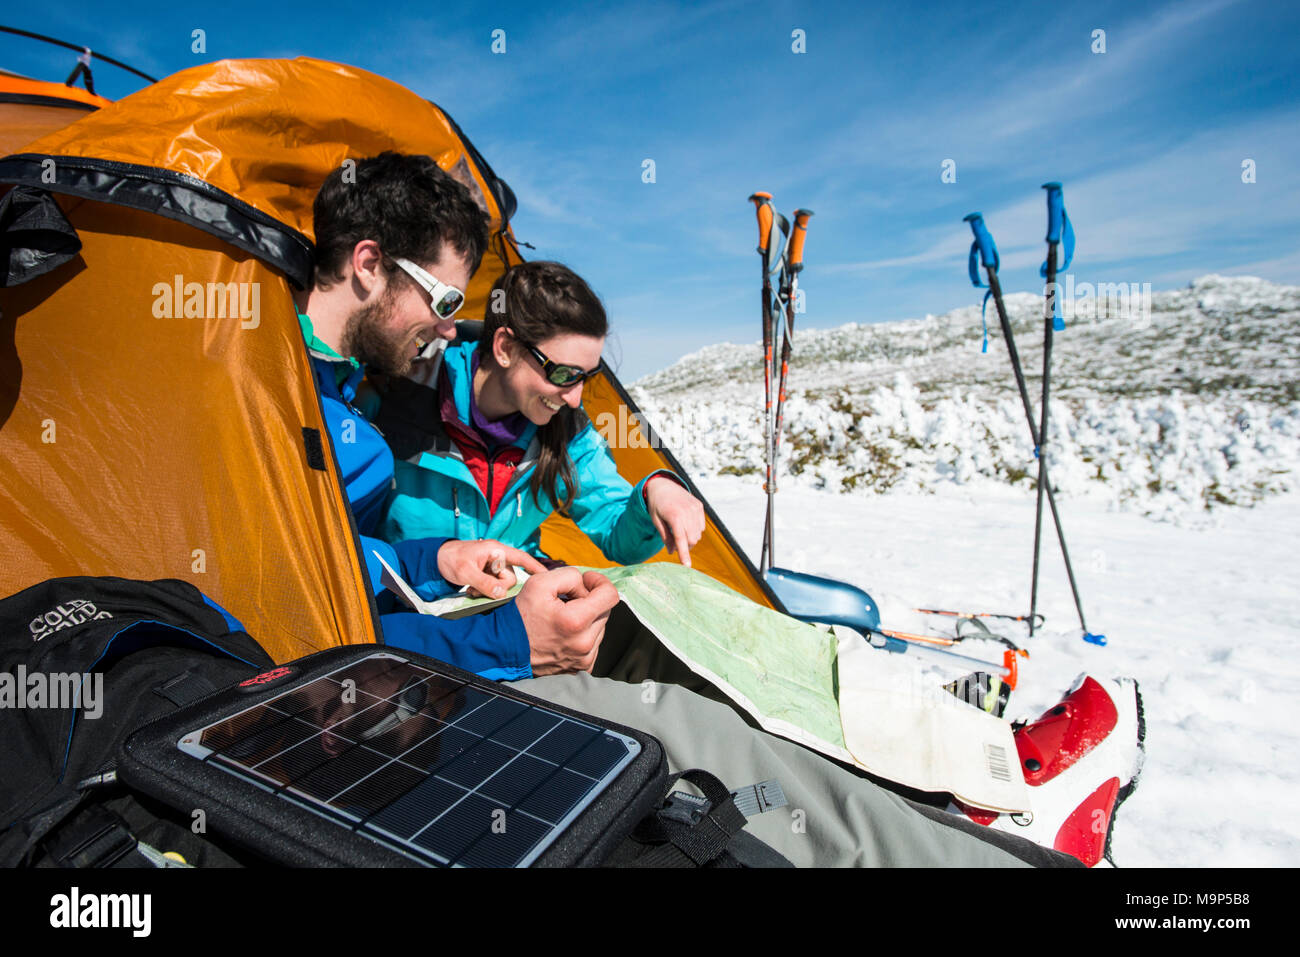 Man and woman setting up campsite in winter in mountains during daytime, New Hampshire, USA - Stock Image